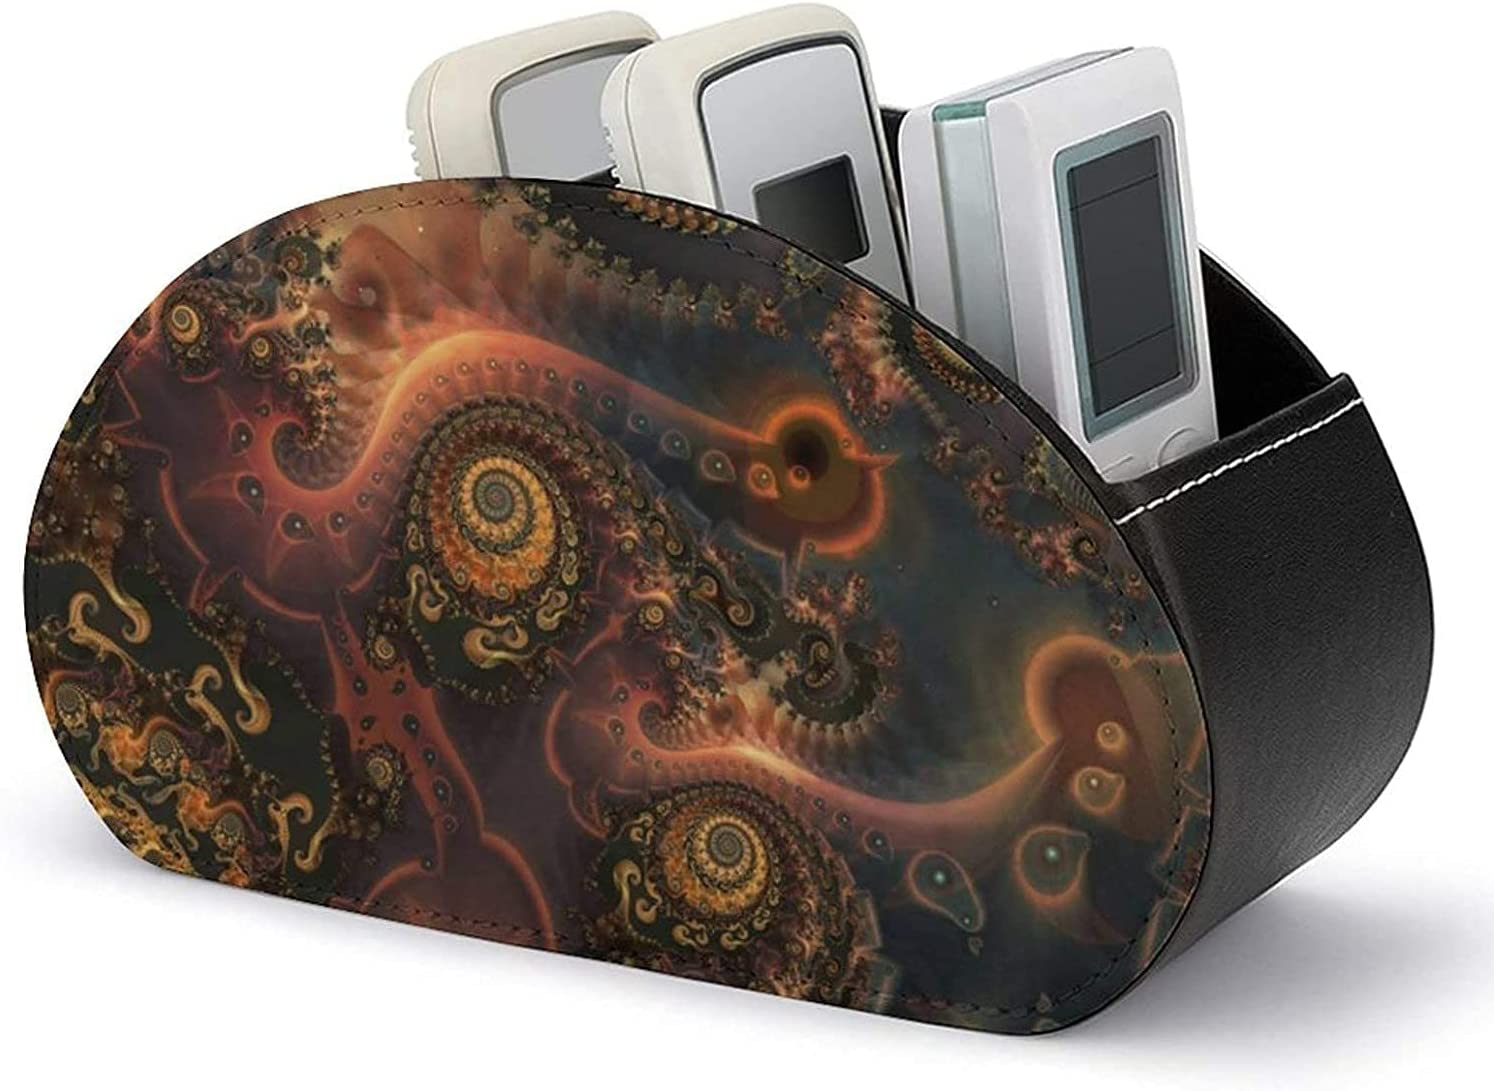 Pu Leather Remote Some reservation - Control Holder New product type Compa with Organizer 5